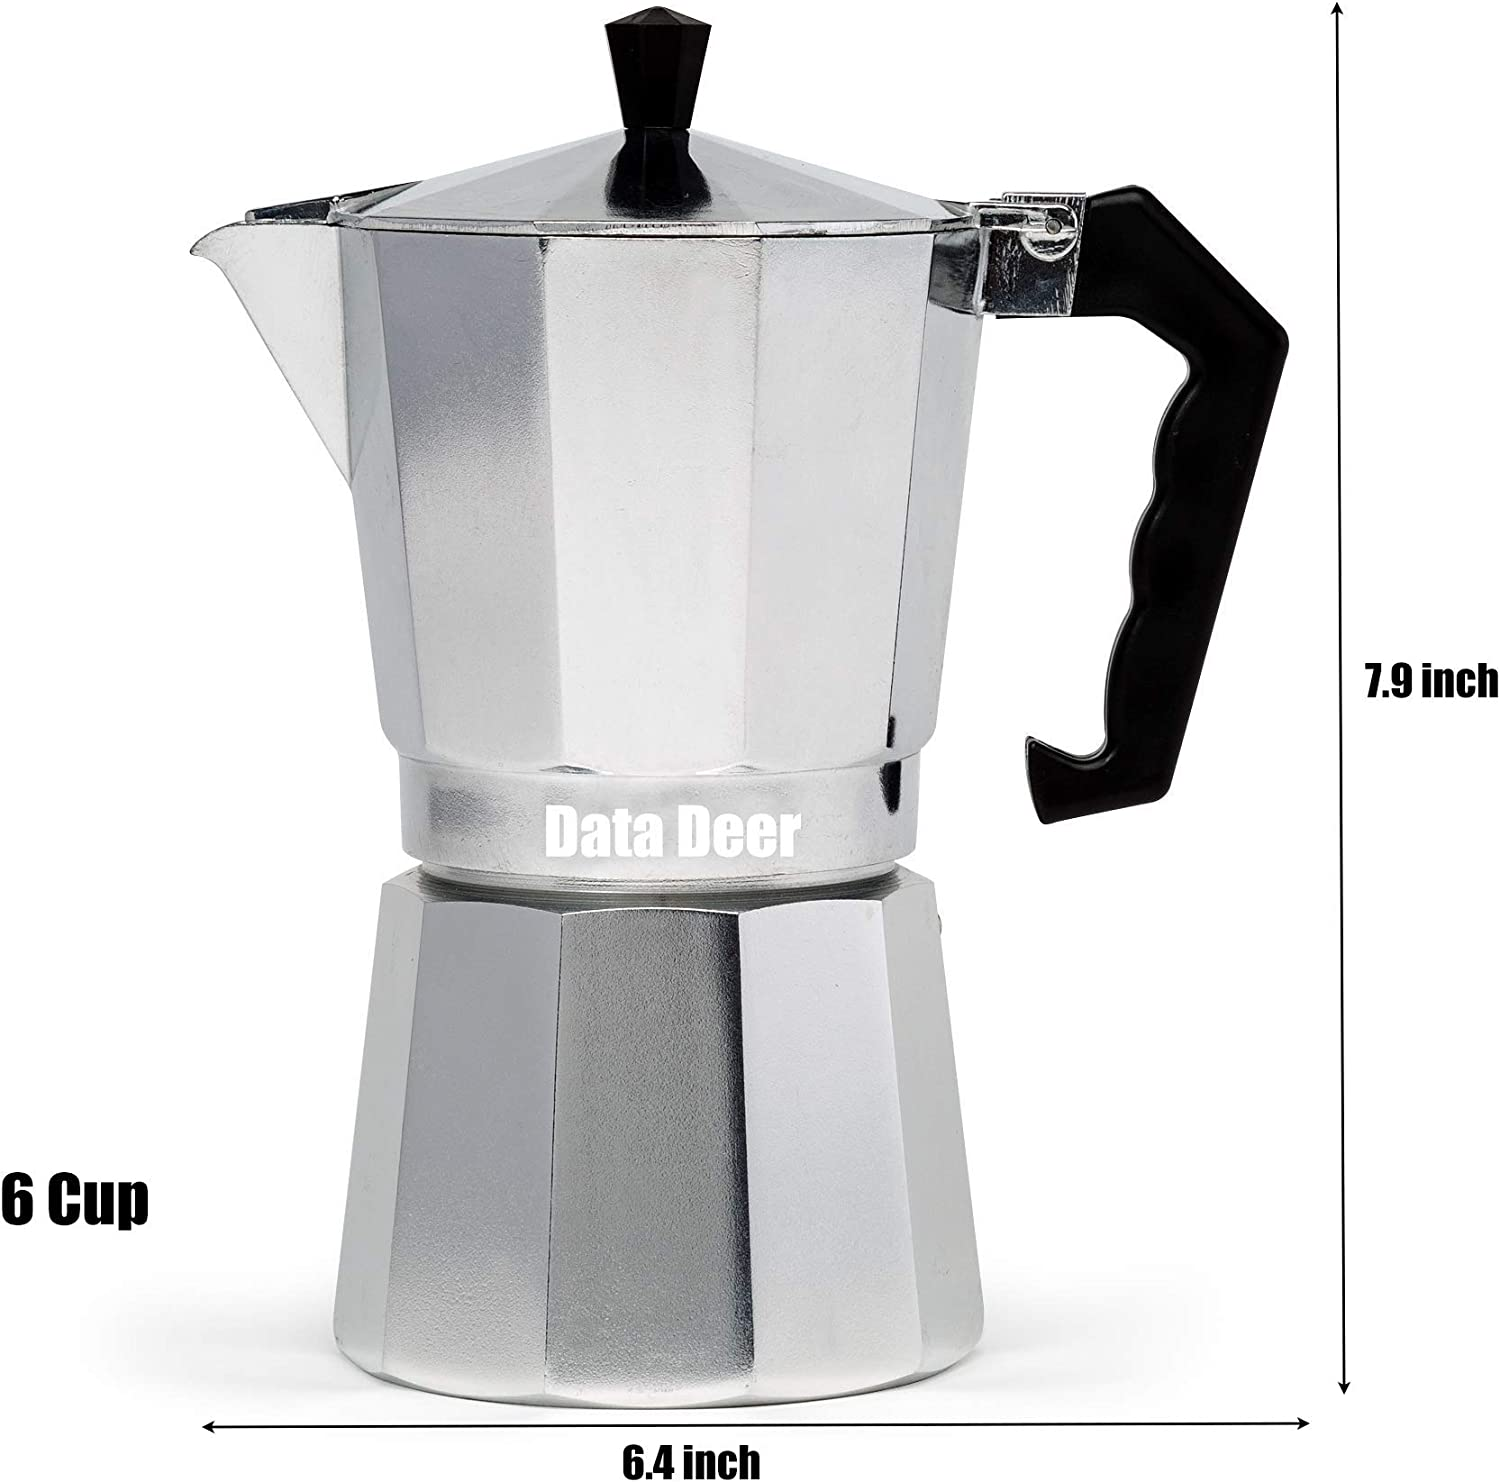 Data Deer Aluminum Stovetop Espresso Maker Moka Pot Coffee Maker for Gas Stove 6-Cup//12-Oz Easily to Make Italian Espresso or Latte,Silver 1cup Camping Stove,Electric Stove